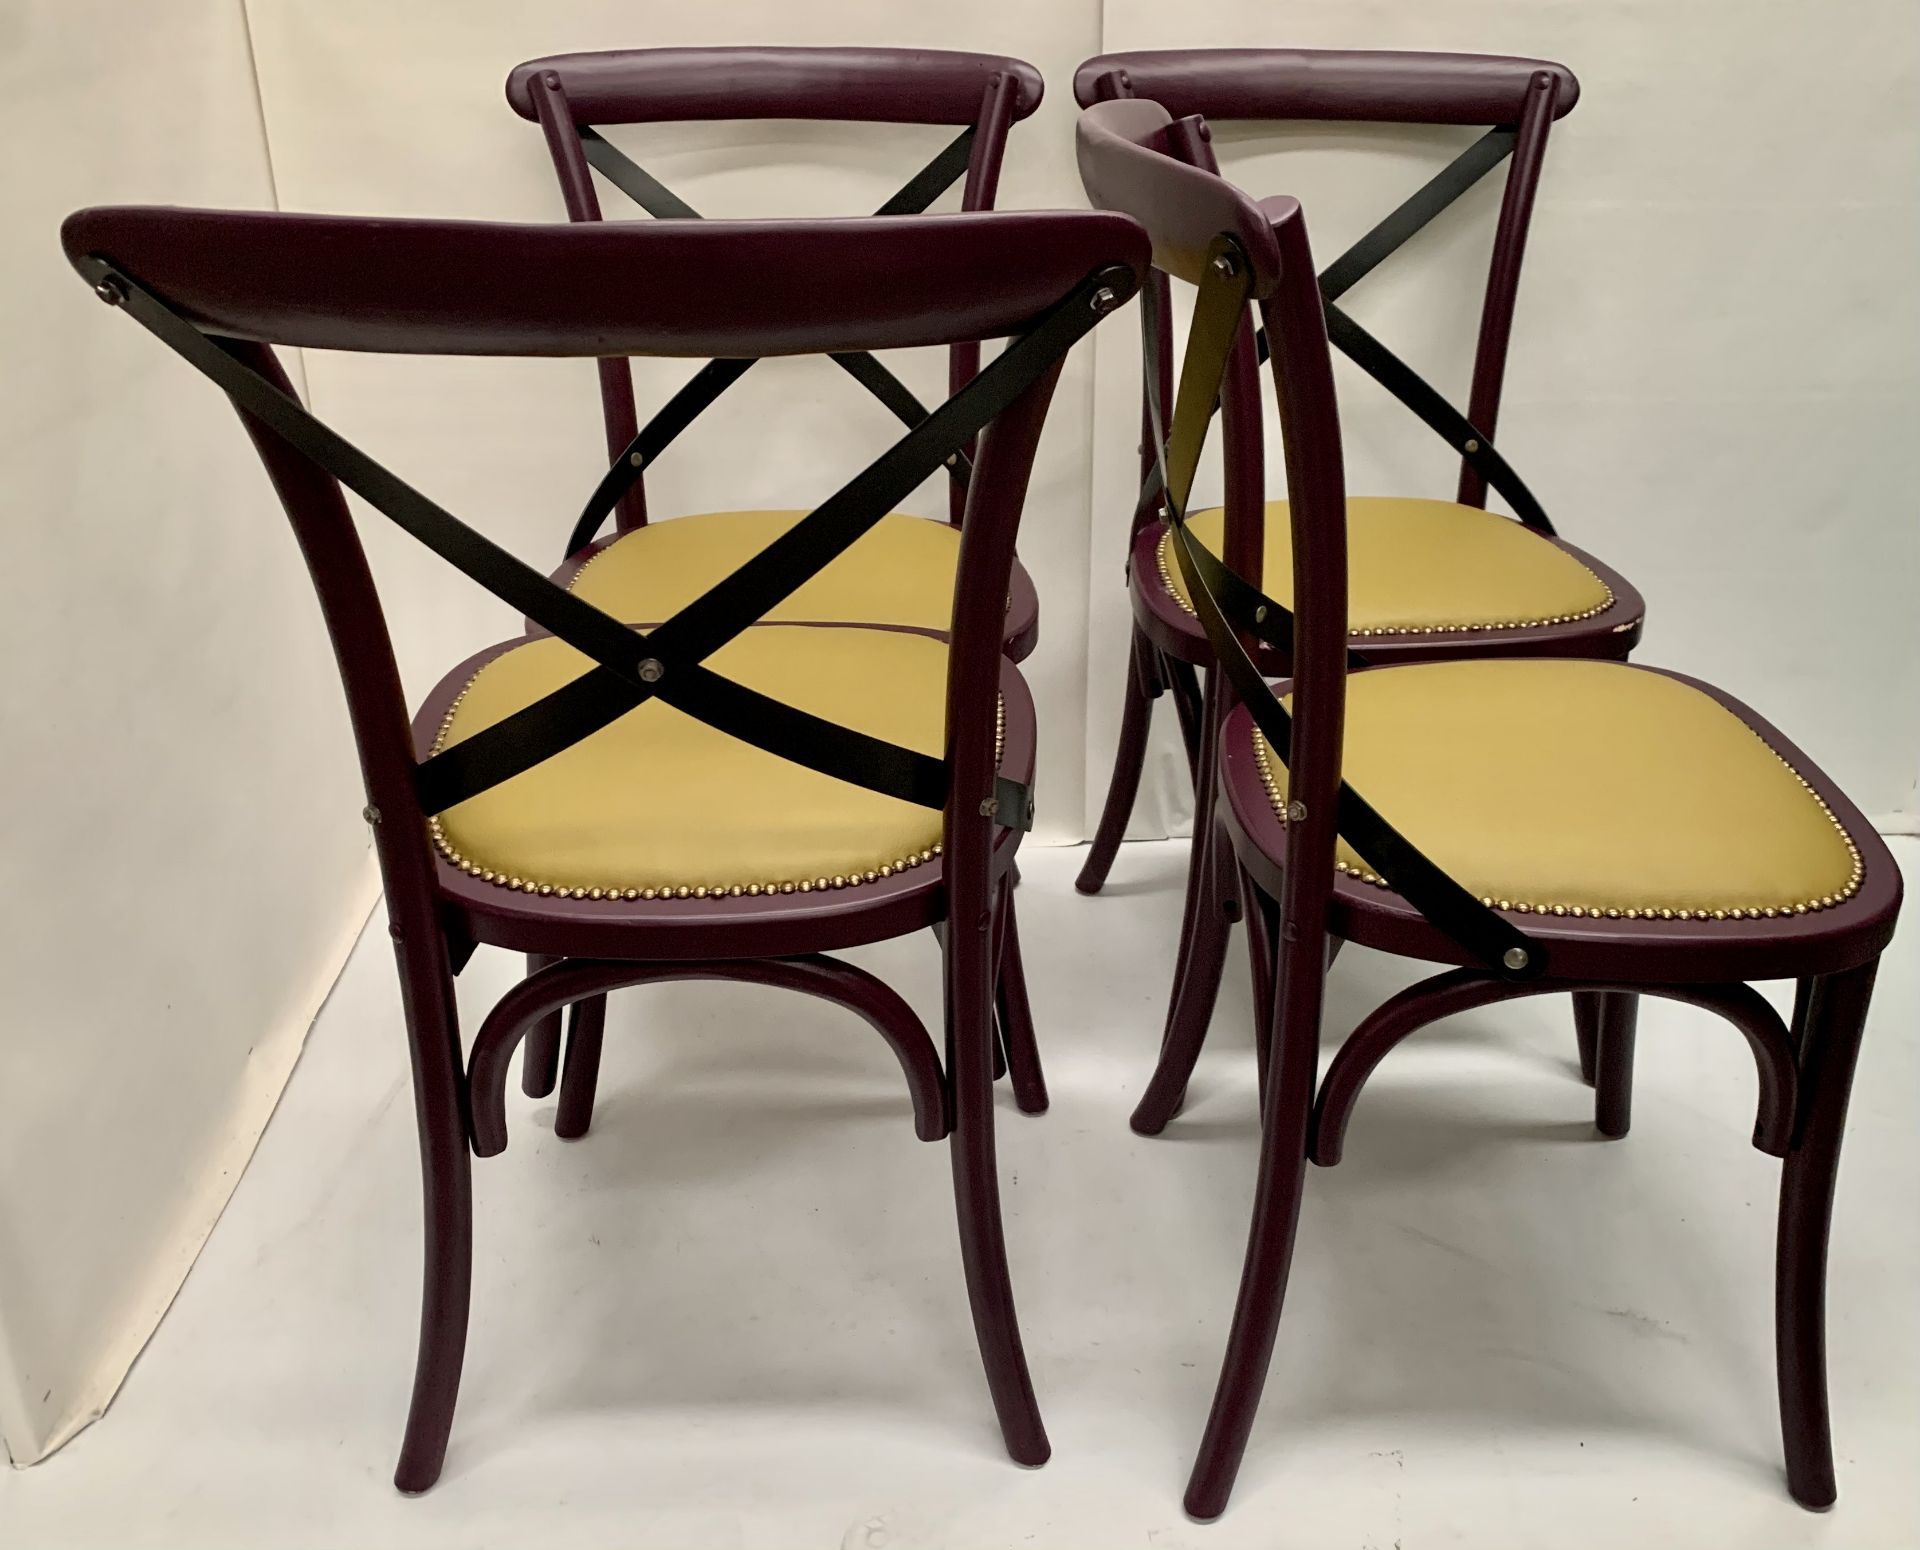 4 x Palm dark purple wooden dining chairs with raw coloured leather effect seats - 51cm x 55cm x - Image 3 of 3